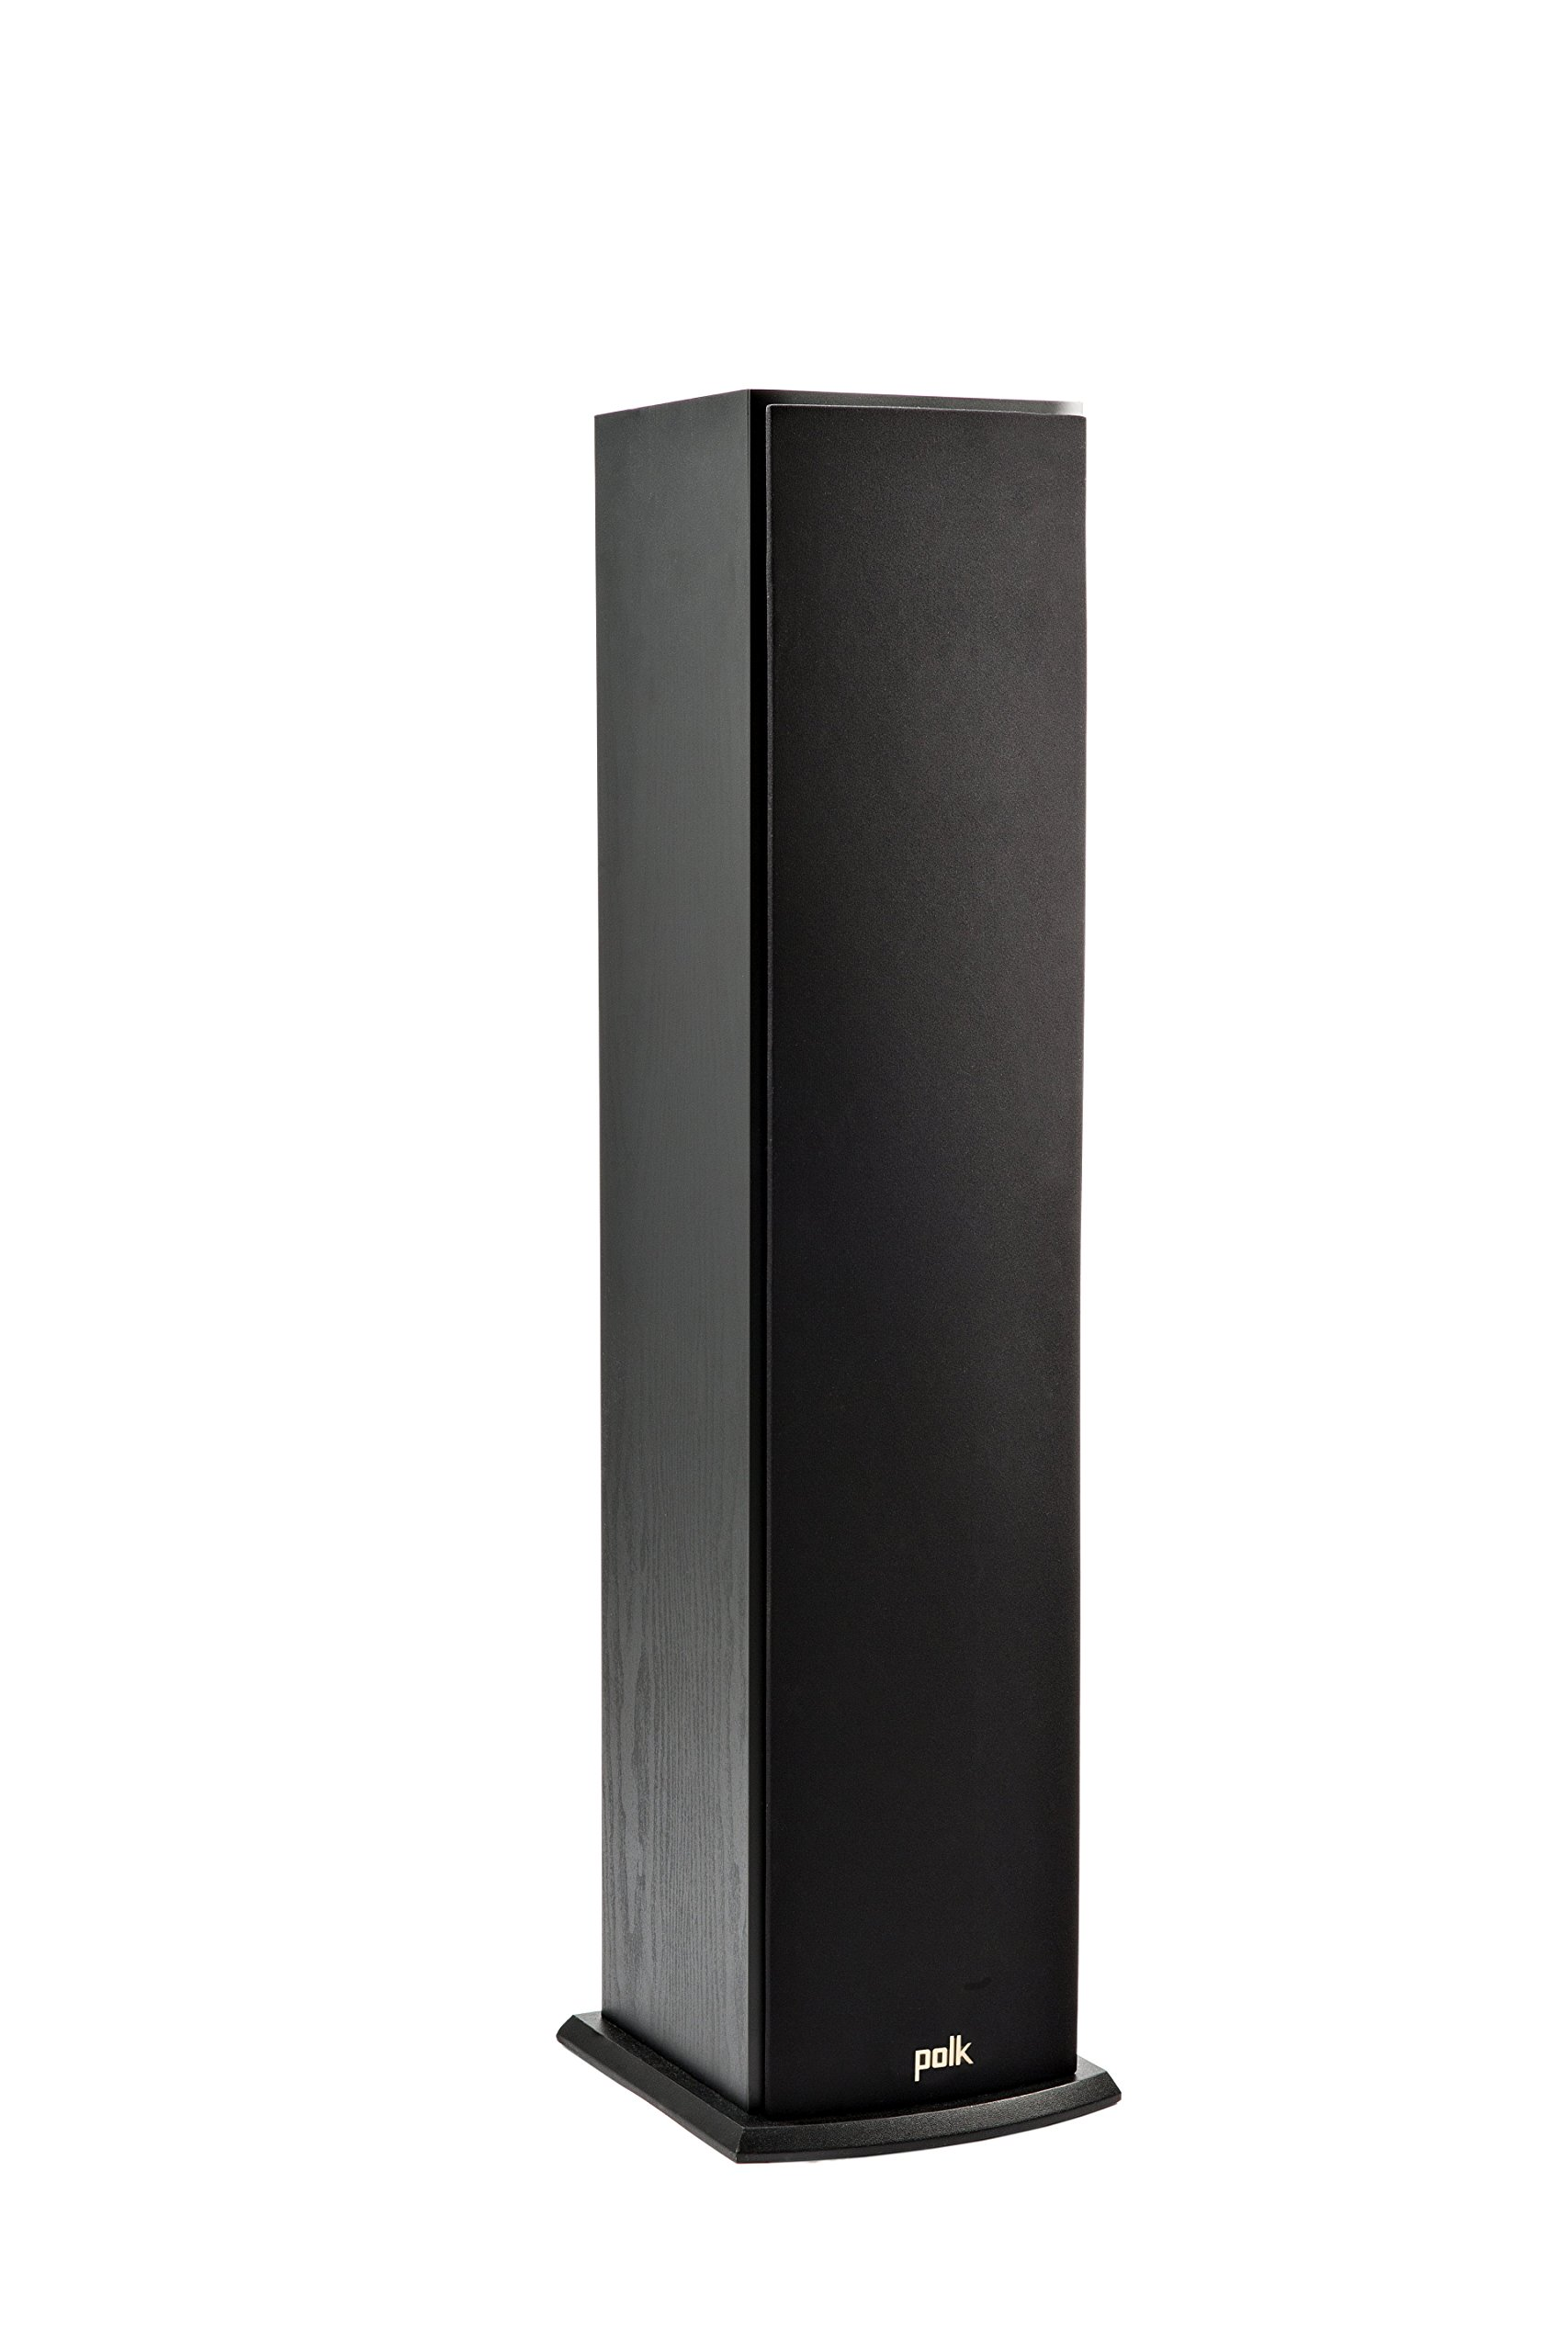 Polk T50 150 Watt Home Theater Floor Standing Tower Speaker (Single) - Premium Sound at a Great Value | Dolby and DTS Surround by Polk Audio